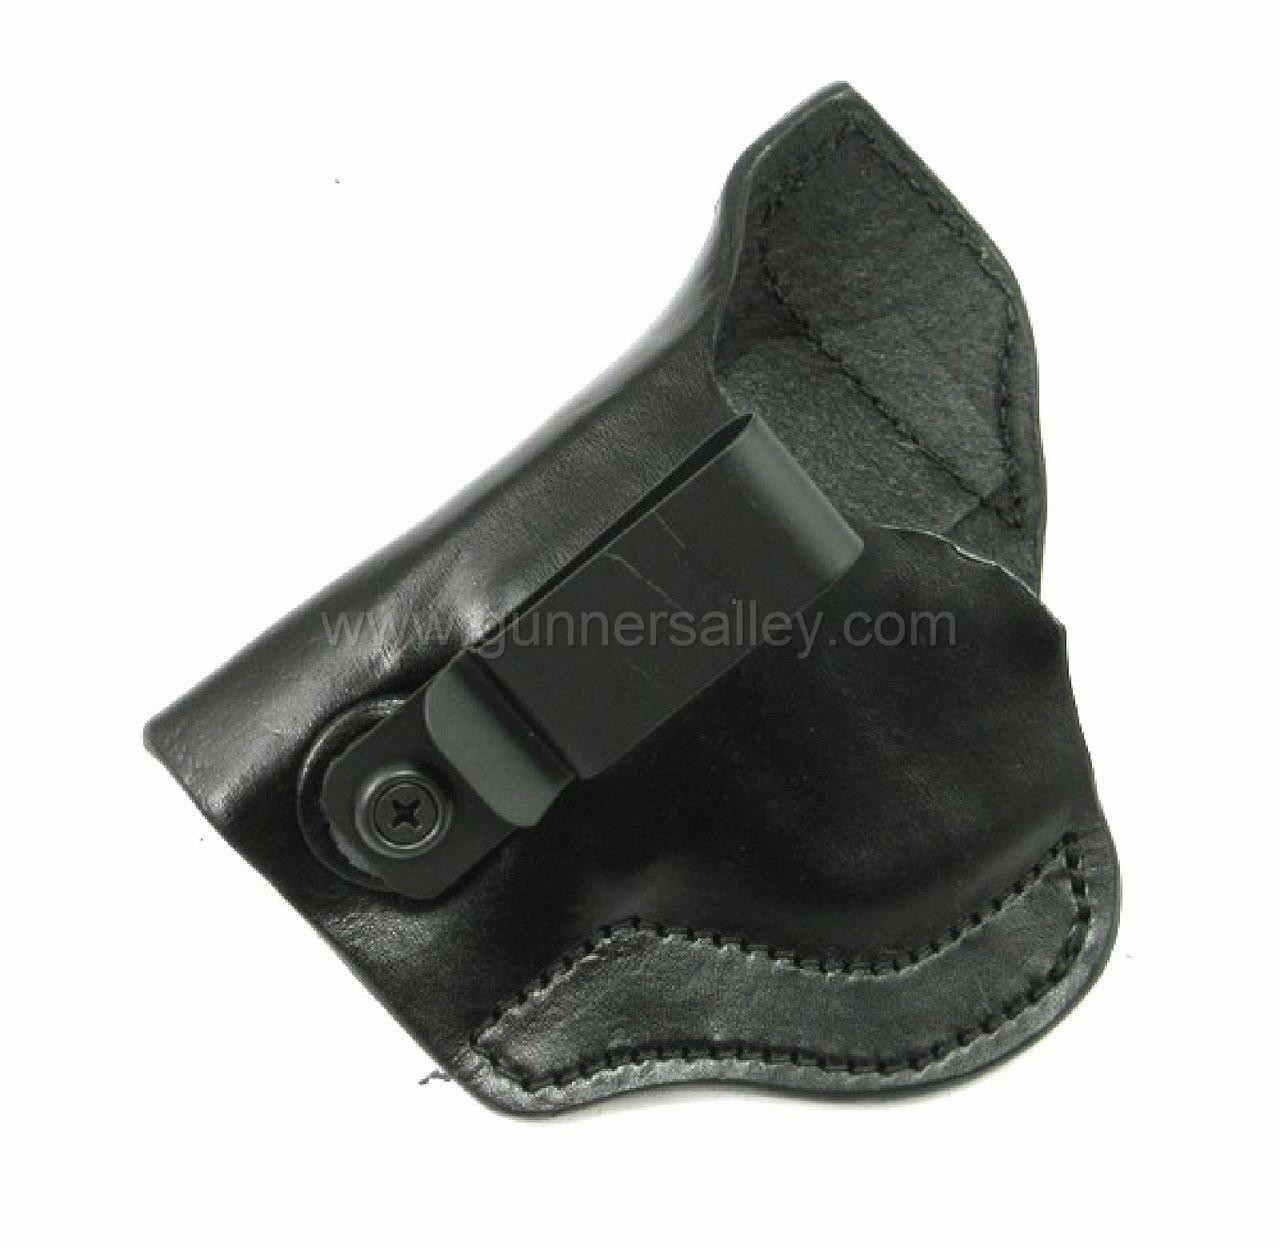 LH Black MTR Custom Tuckable Adversary Clip-On IWB Holster for a S&W Bodyguard .38 with Integrated Laser - Side View